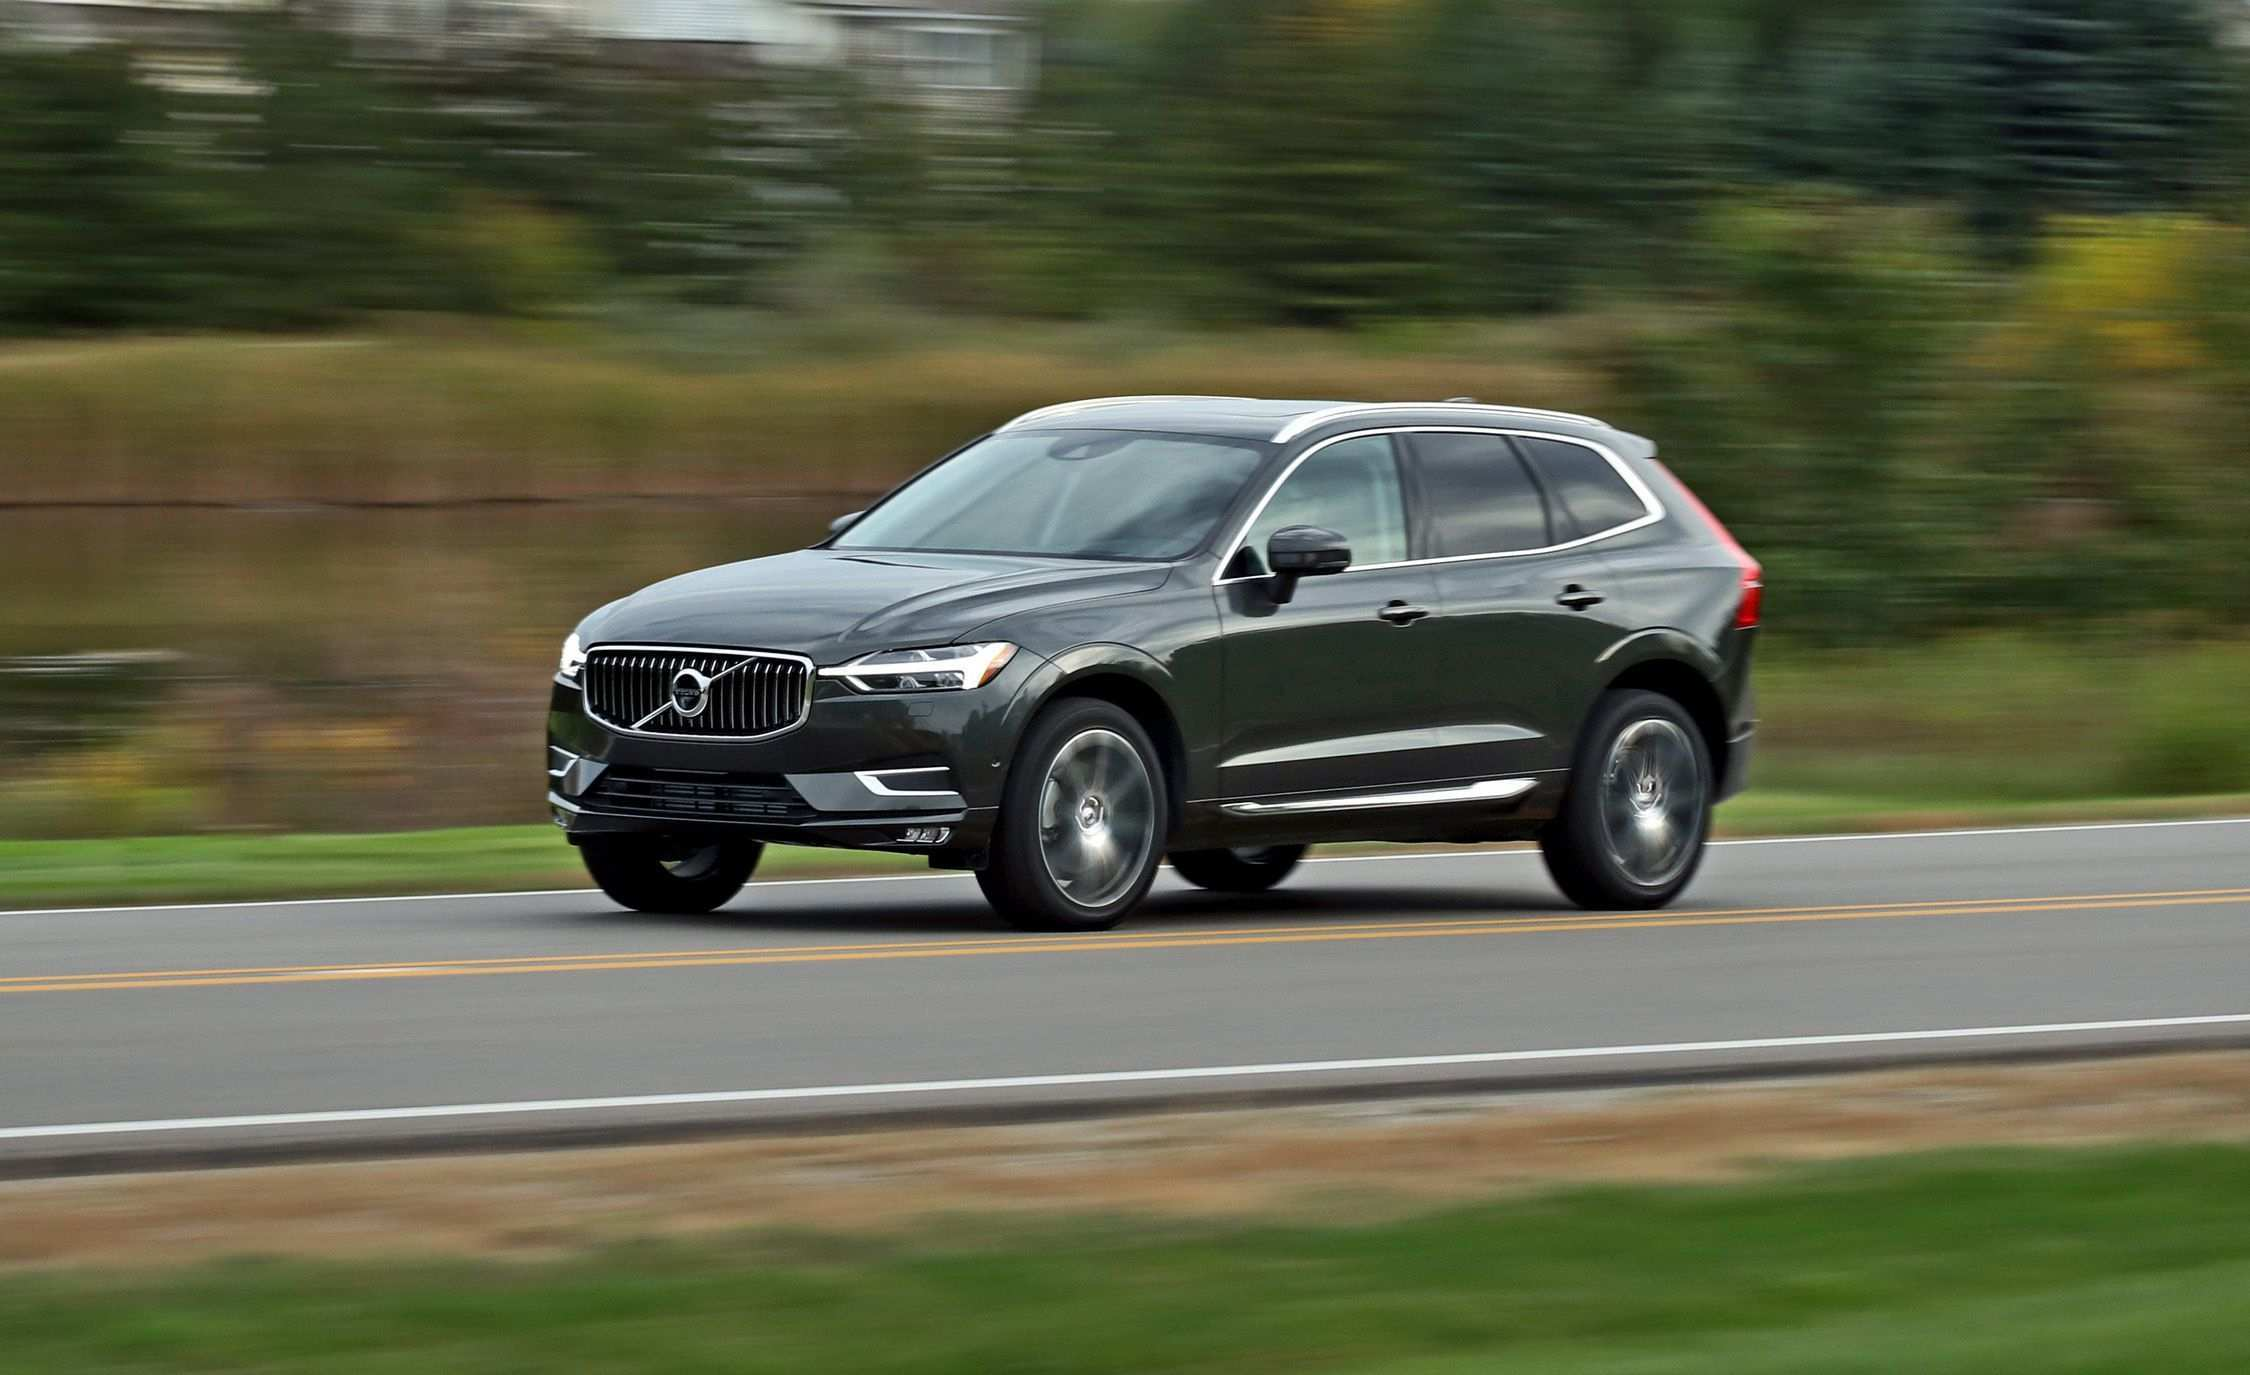 44 New Volvo Xc60 2019 Manual Overview